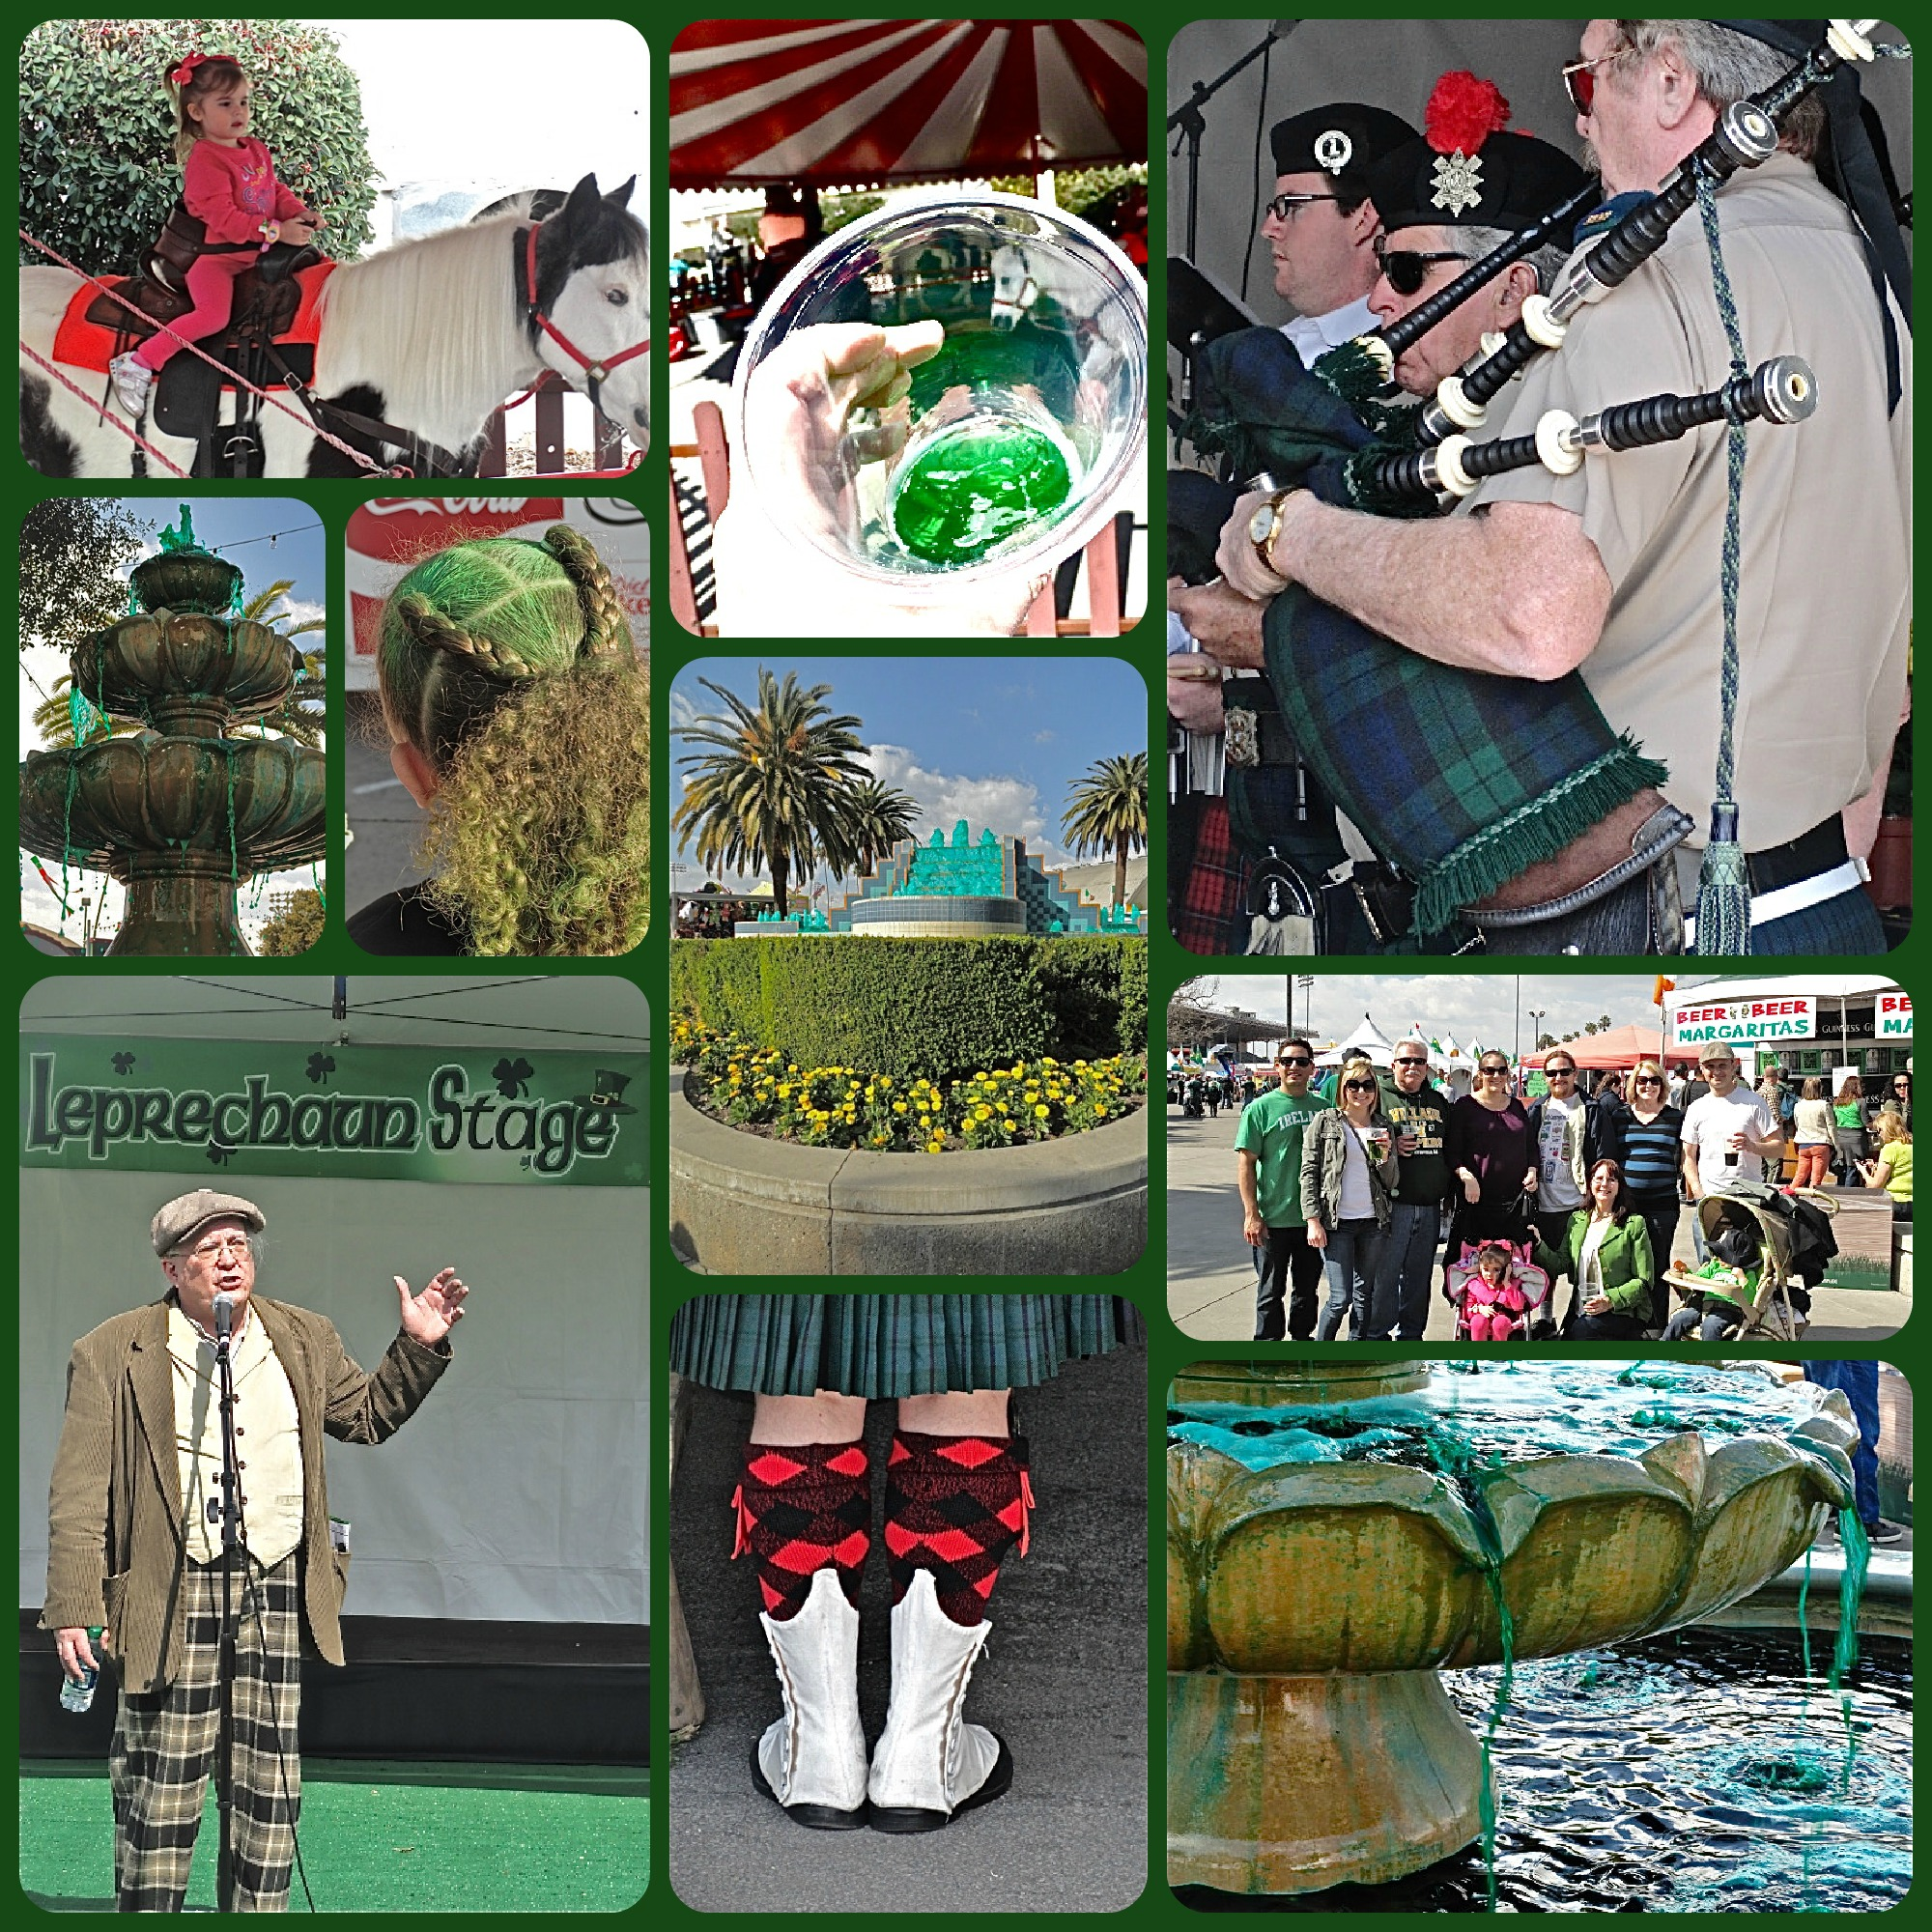 Irish festival, L.A. County Fairgrounds, St. Patrick's Day, pony ride, green water in fountains, green beer, bagpipe, Lynn Kelley, Lynn Kelley author, http://lynnkelleyauthor.wordpress.com